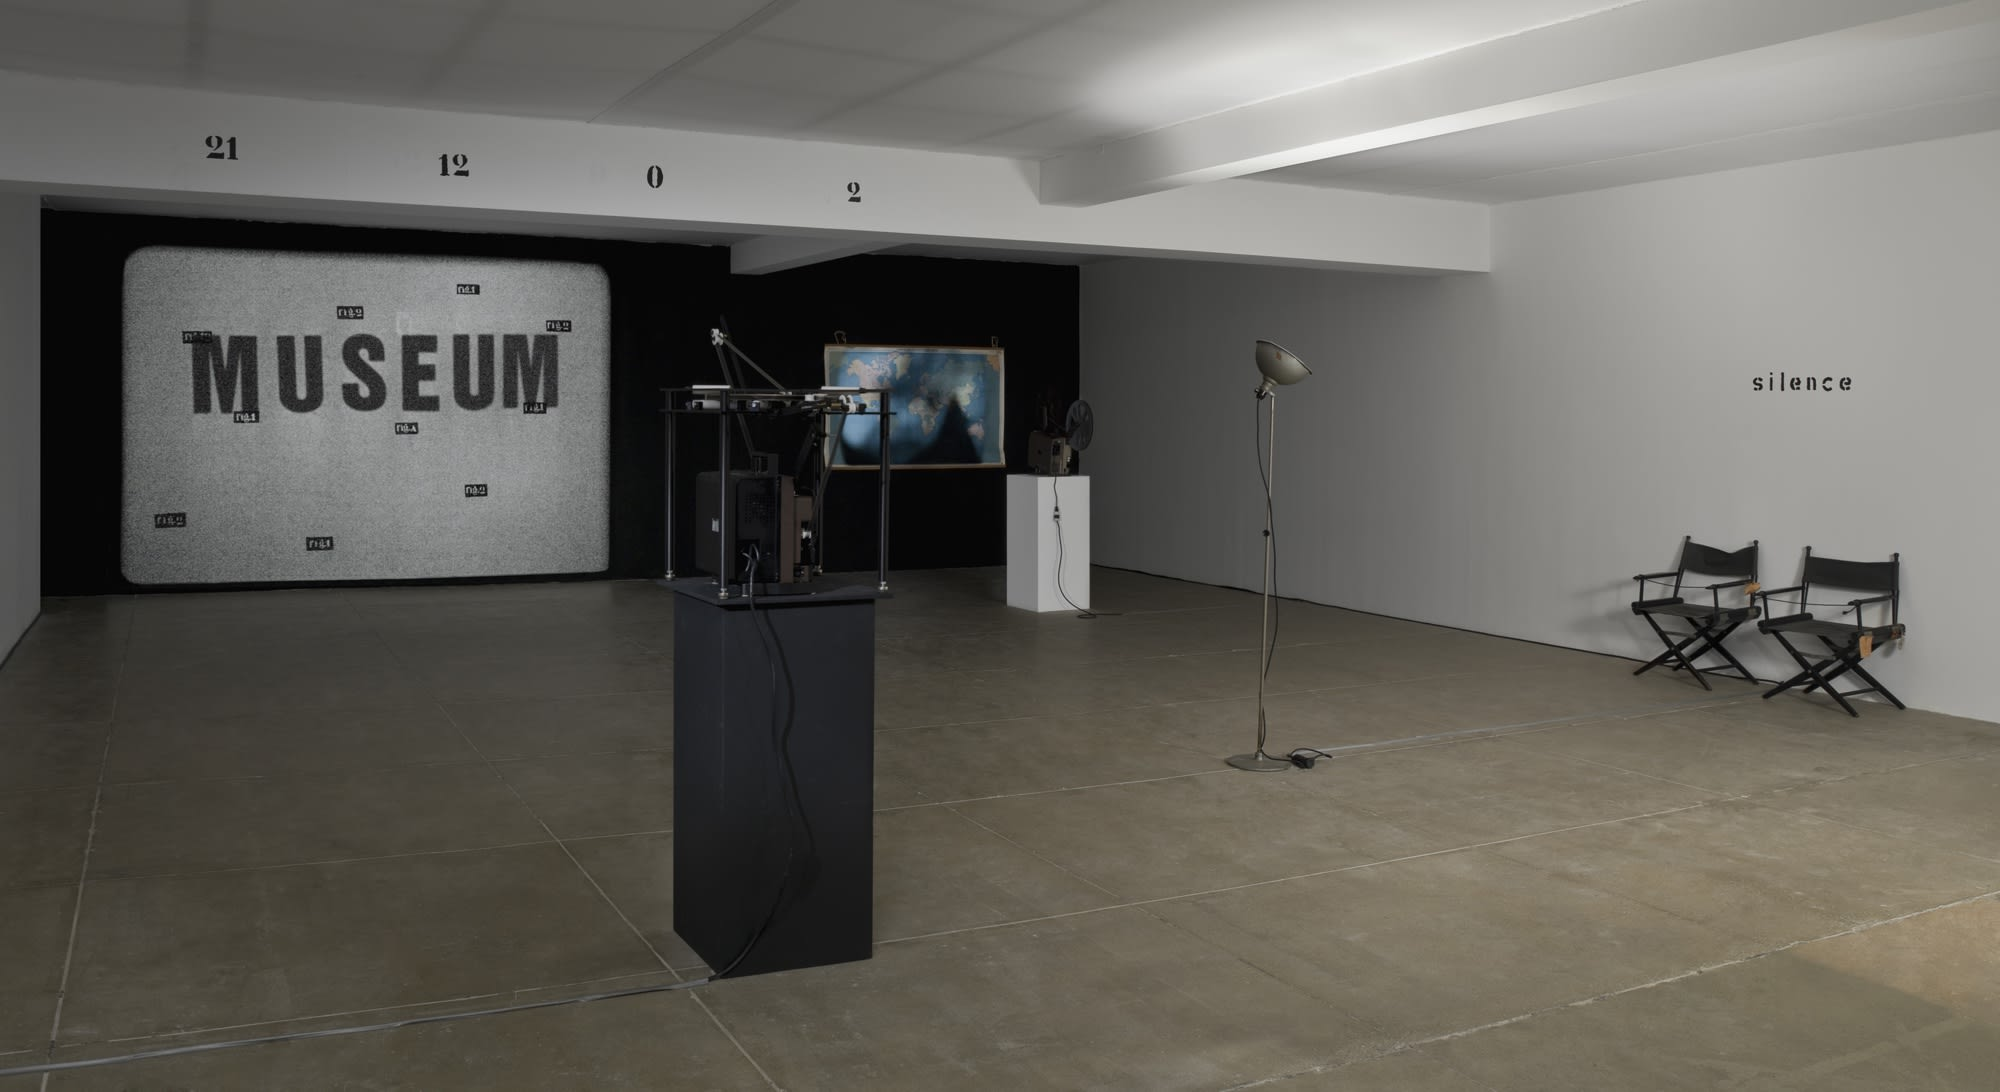 In a white room with a beige floor, two projectors run, showing a world map on one, and a large image of that says MUSEUM with small scattered text over it. A beam on the ceiling of the room reads: 21 12 0 2. On the right wall, text reads: silence.